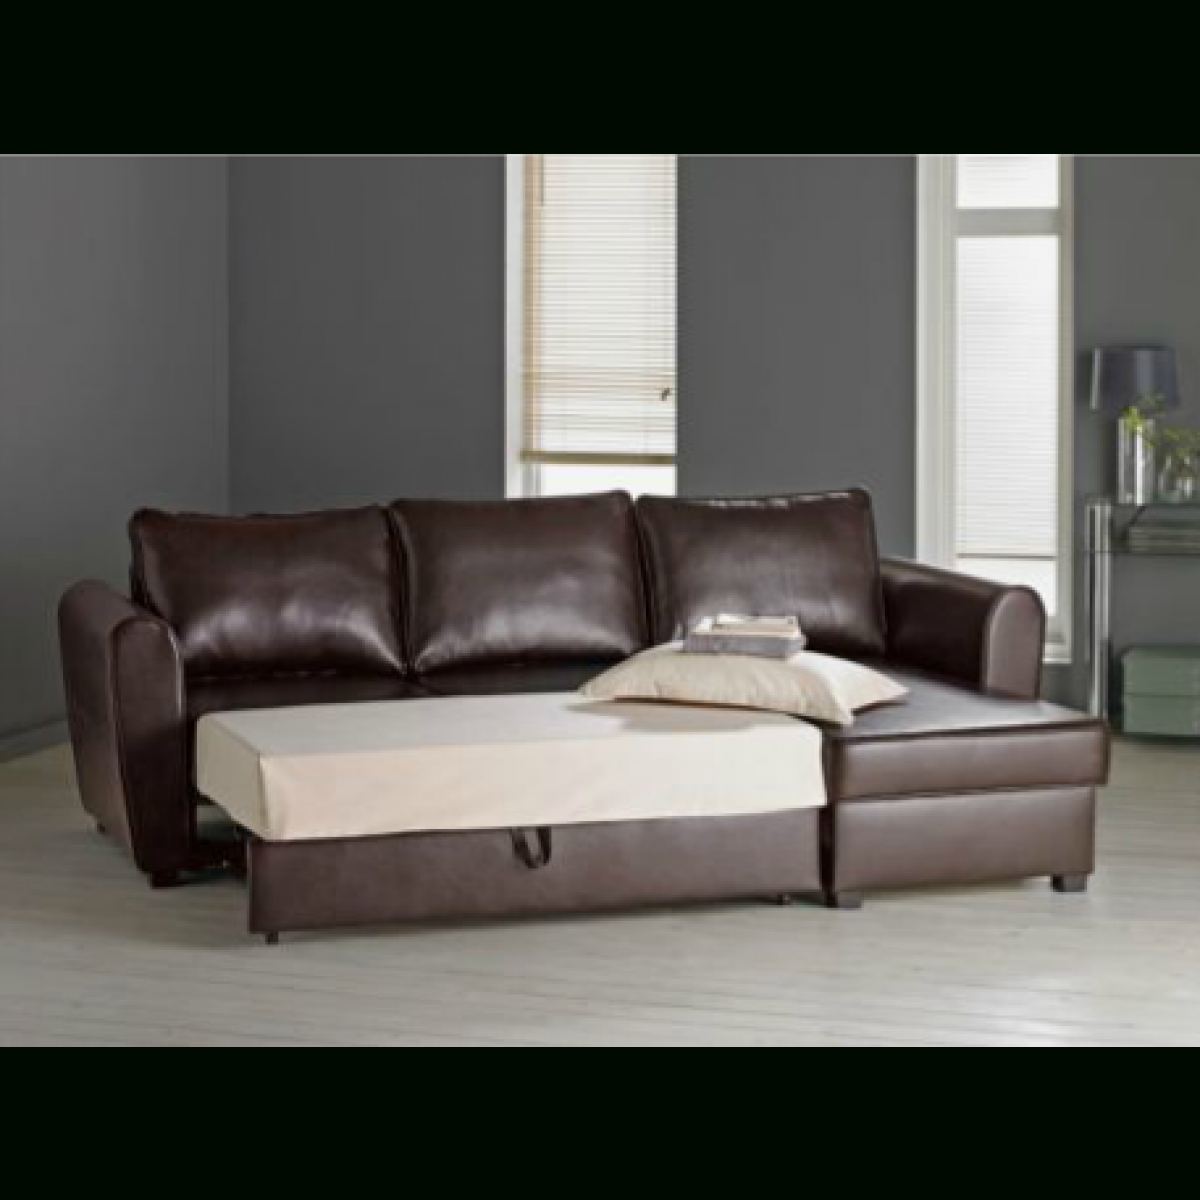 Siena Leather Effect Corner Sofa Bed With Storage -Chocolate for Leather Sofas With Storage (Image 6 of 10)